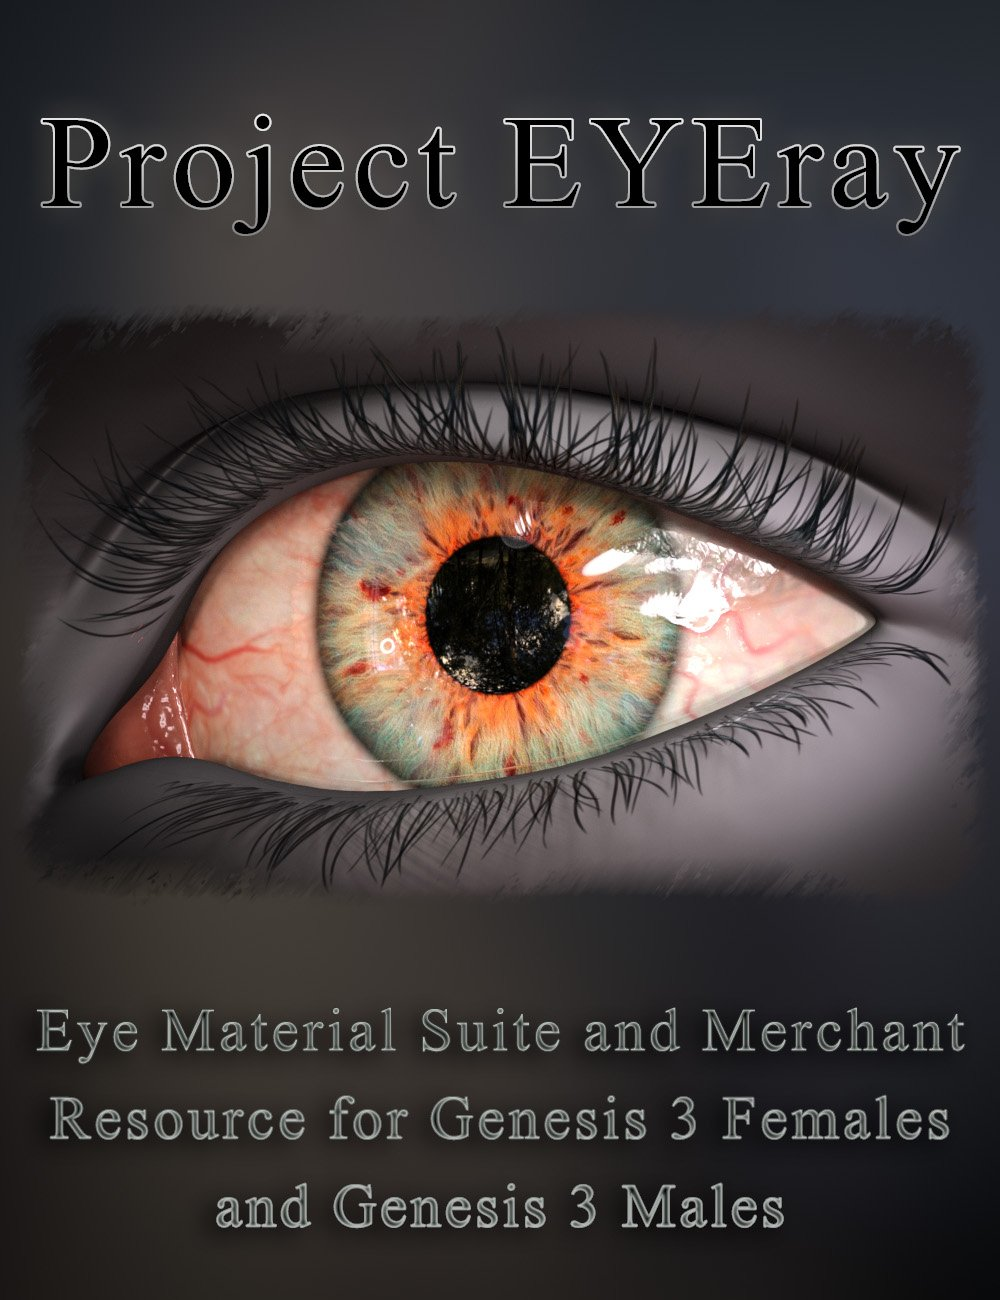 Project EYEray - Eye Material Suite and Merchant Resource for Genesis 3 Female and Male by: DimensionTheory, 3D Models by Daz 3D